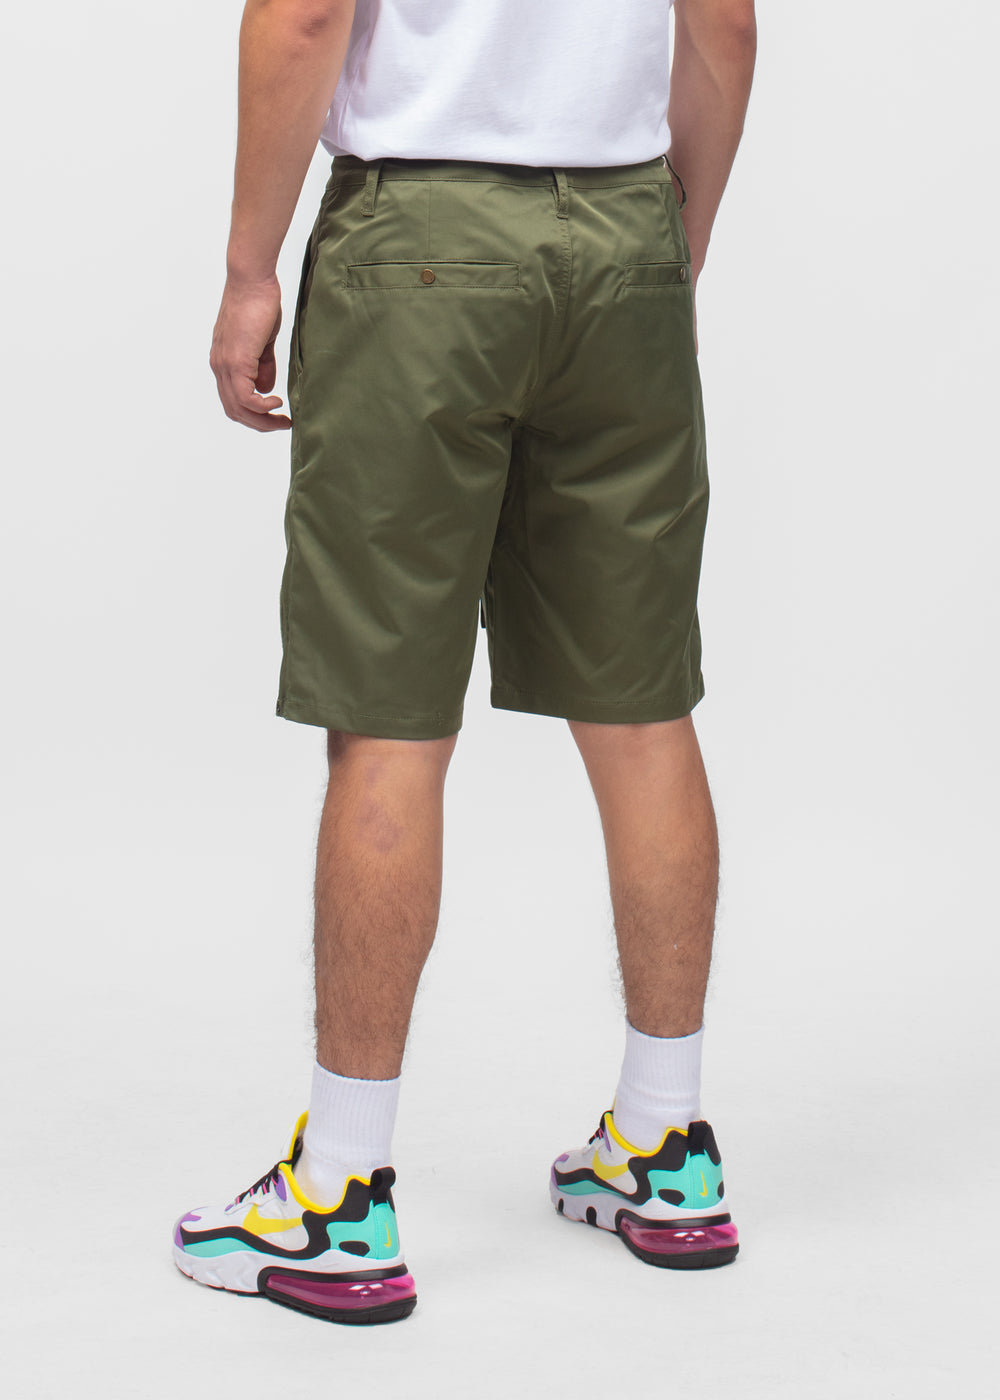 billionaire-boys-club-aviator-shorts-891-6101-grn-grn-3